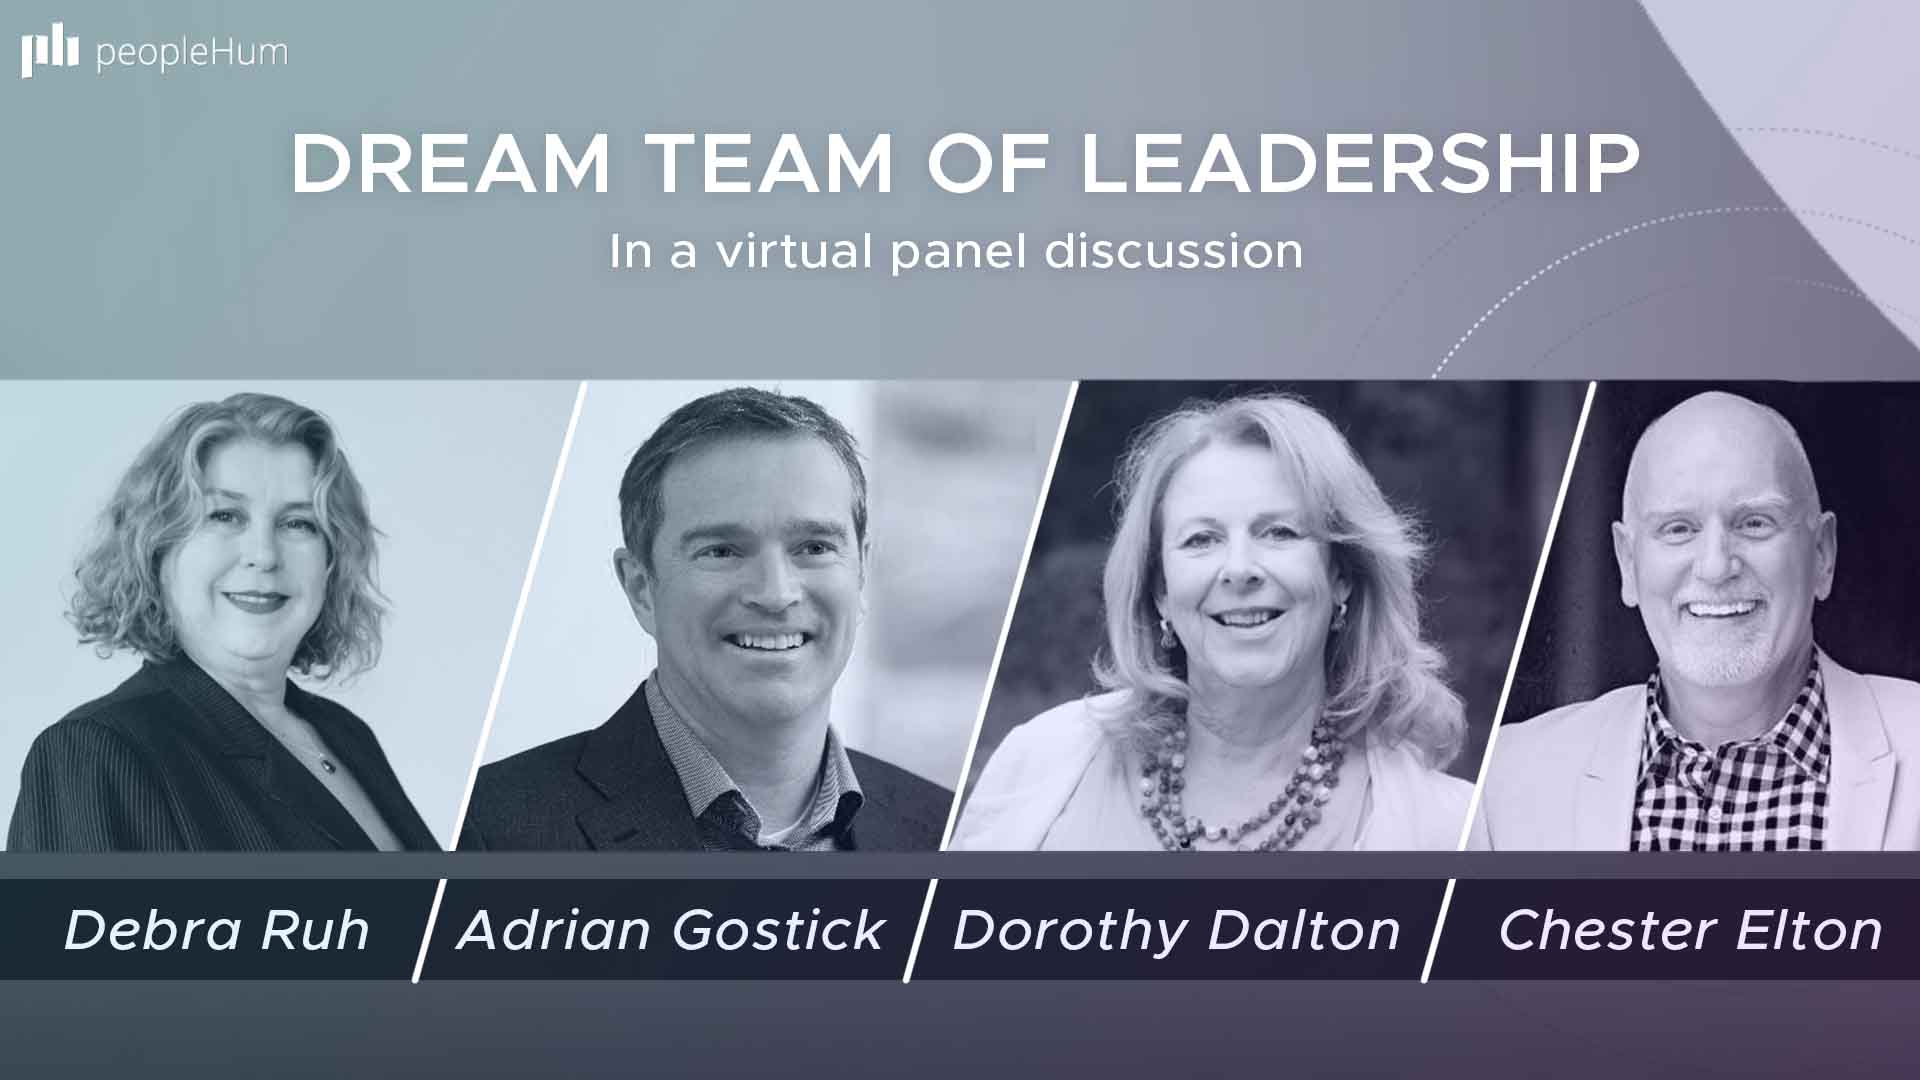 Dream team of leadership - In a virtual panel discussion